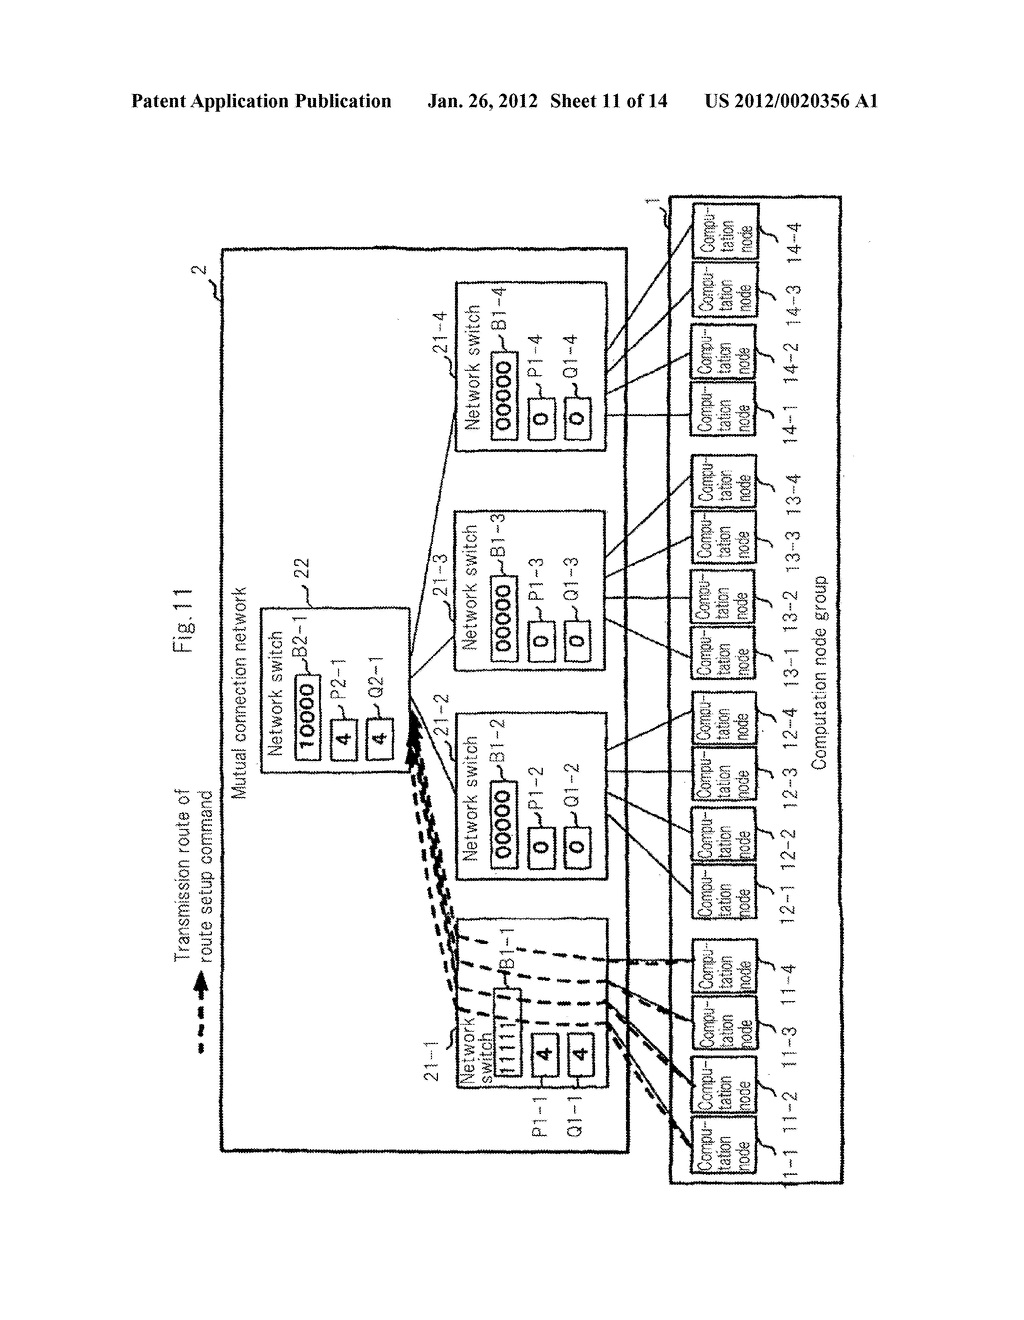 hight resolution of network switch route setup method program and parallel computer system diagram schematic and image 12